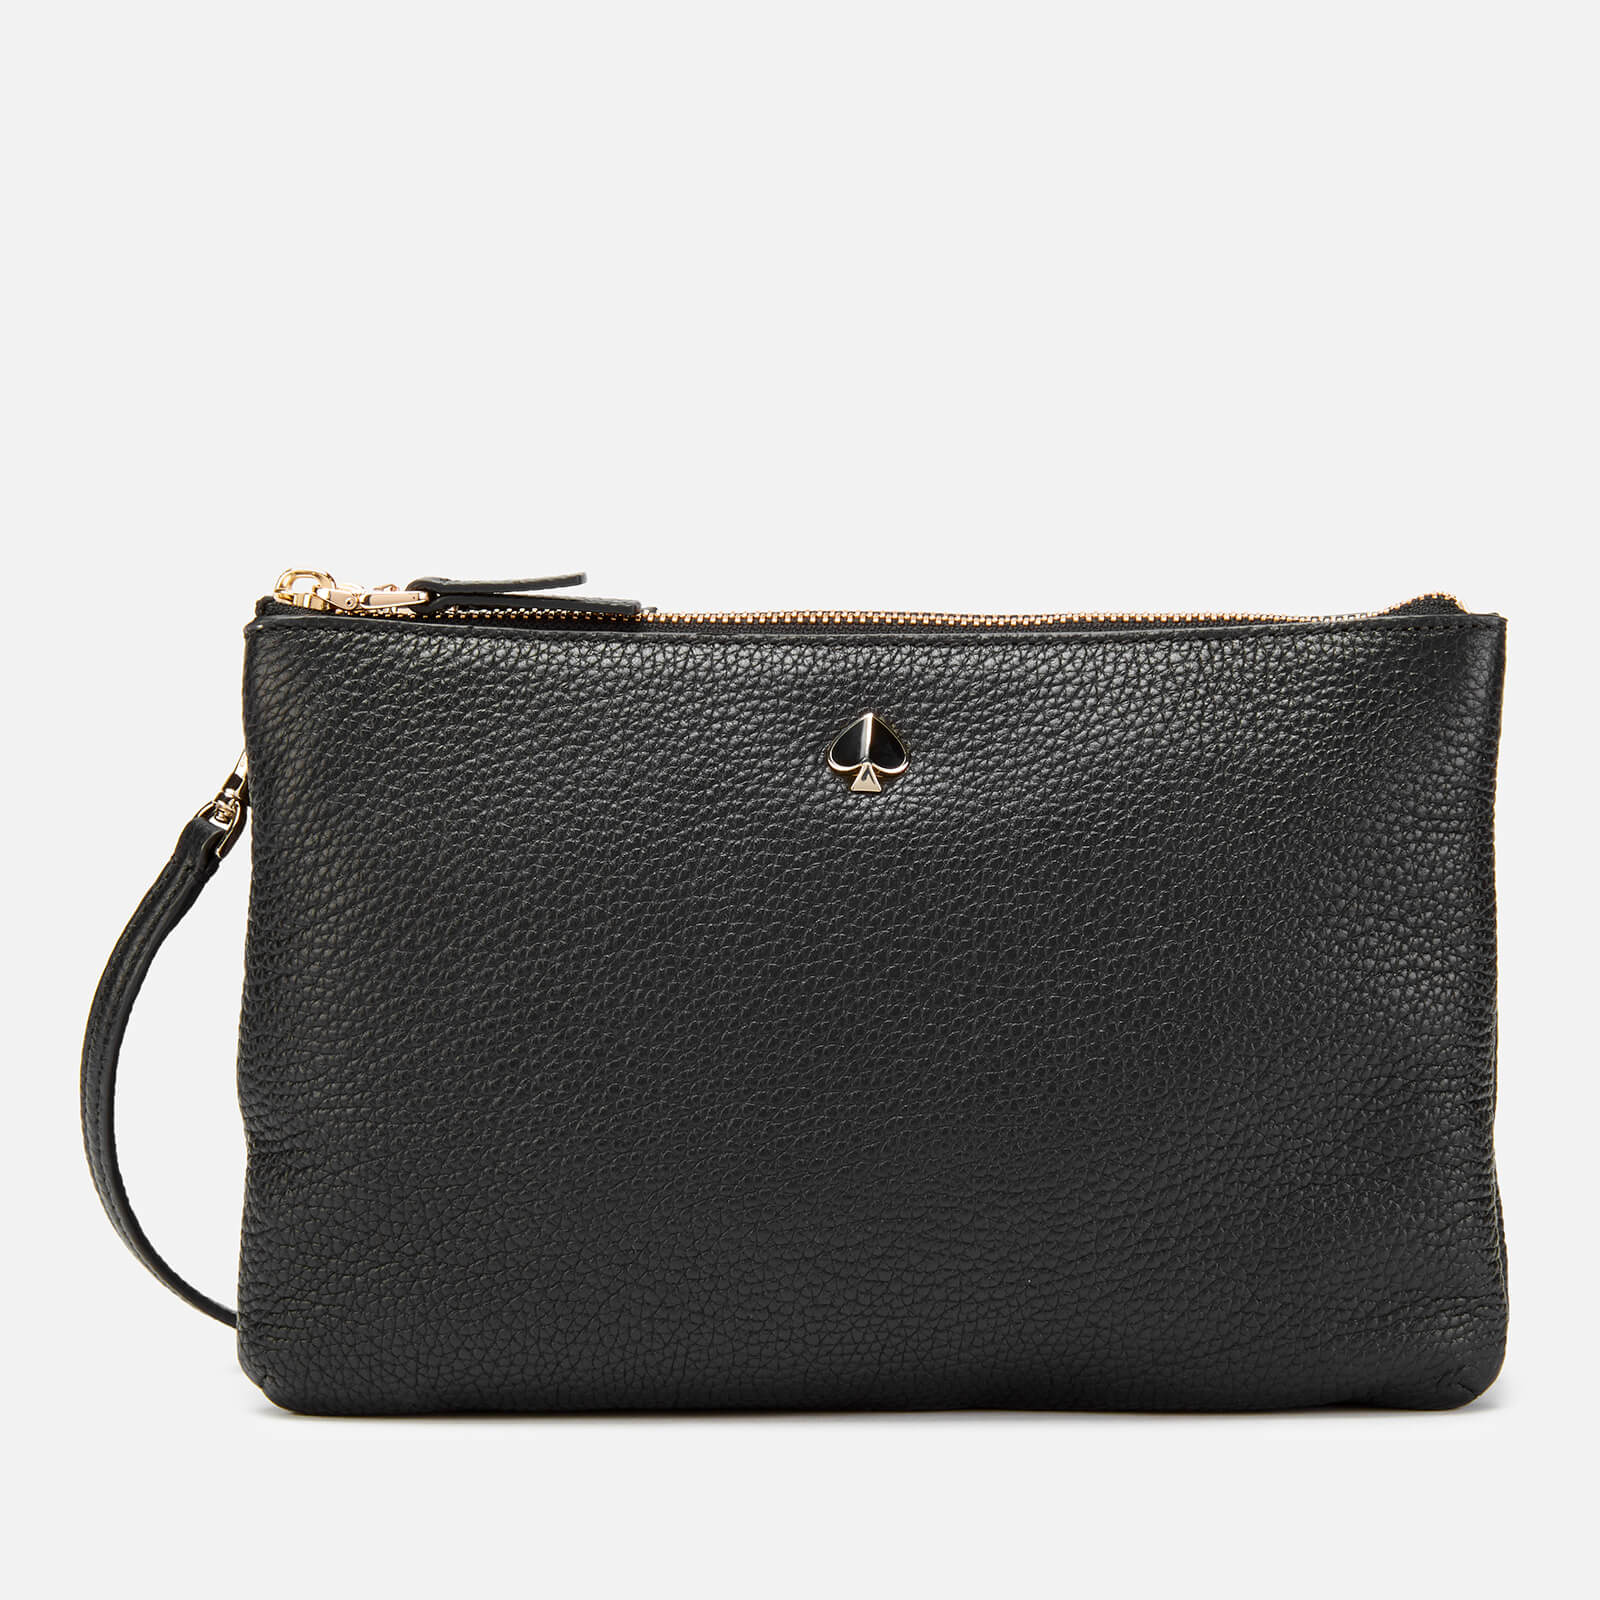 Kate Spade New York Women's Medium Double Gusset Cross Body Bag - Black 原價225英鎊 優惠價135